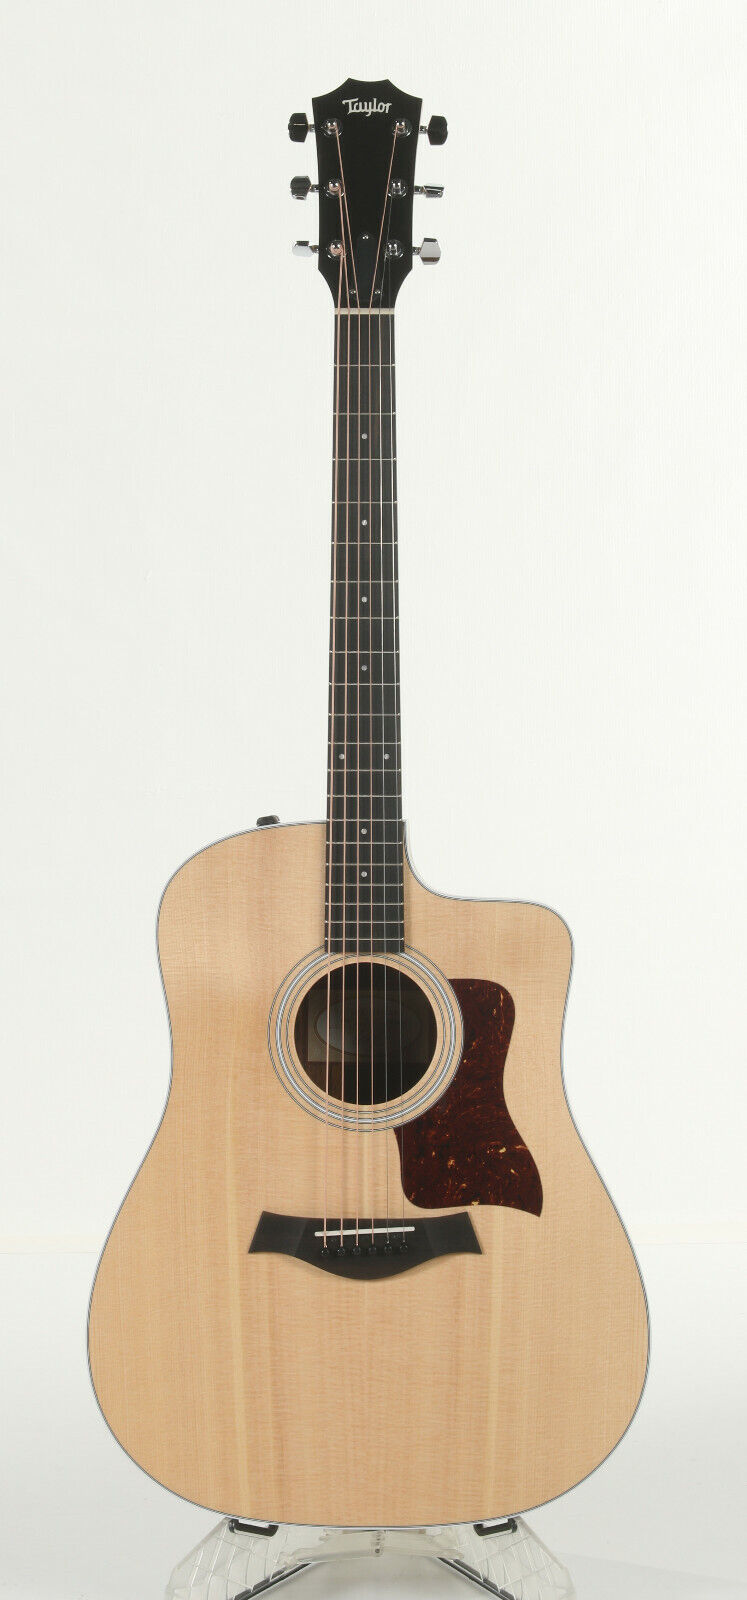 Taylor 210ce Acoustic-Electric Guitar - Natural - $600.00